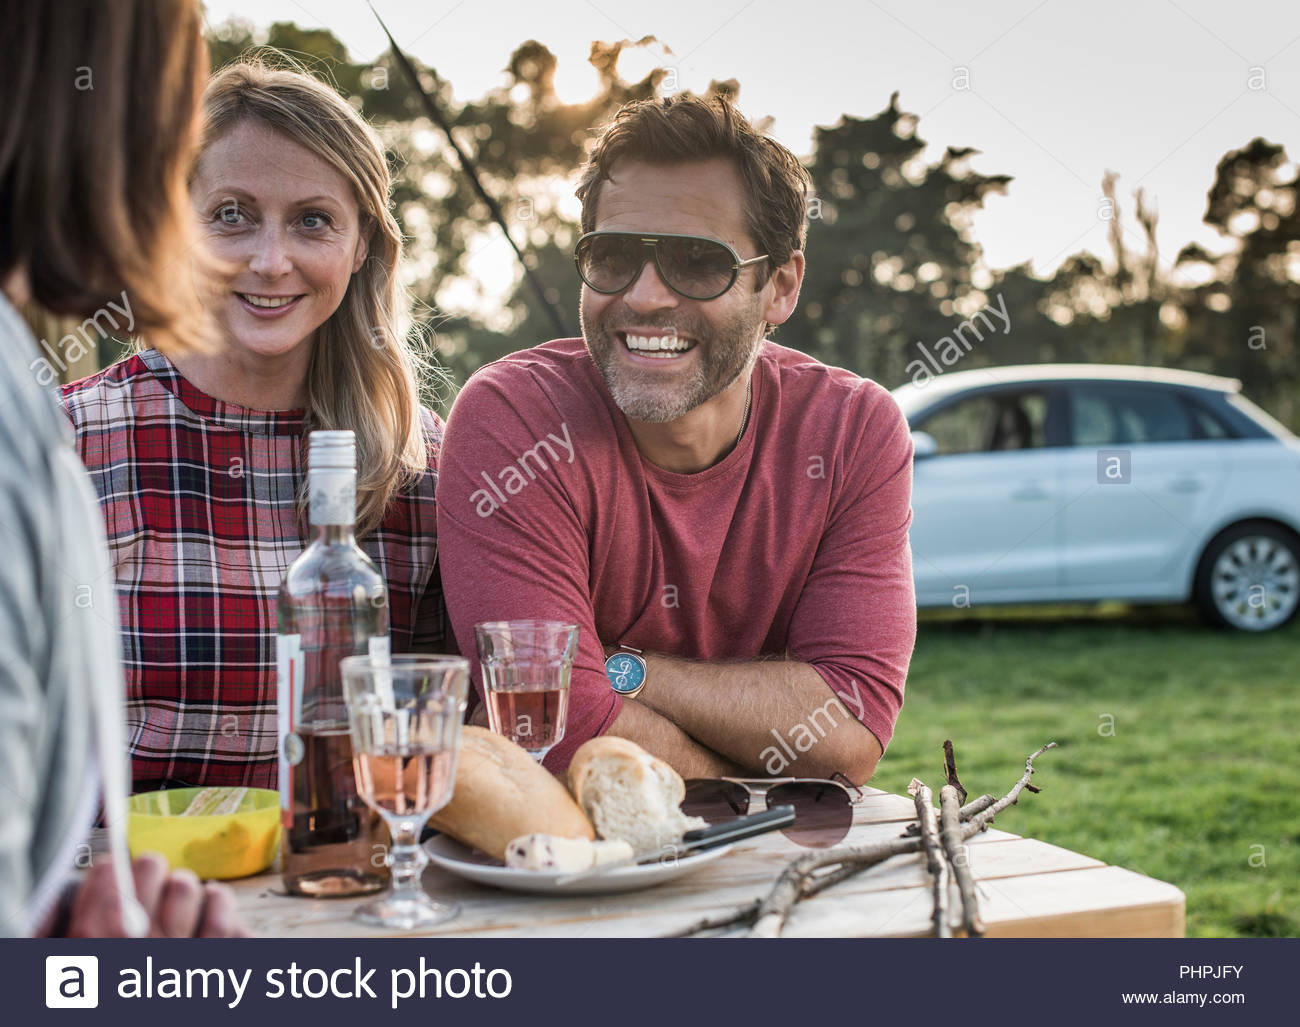 People smiling at picnic table - Stock Image